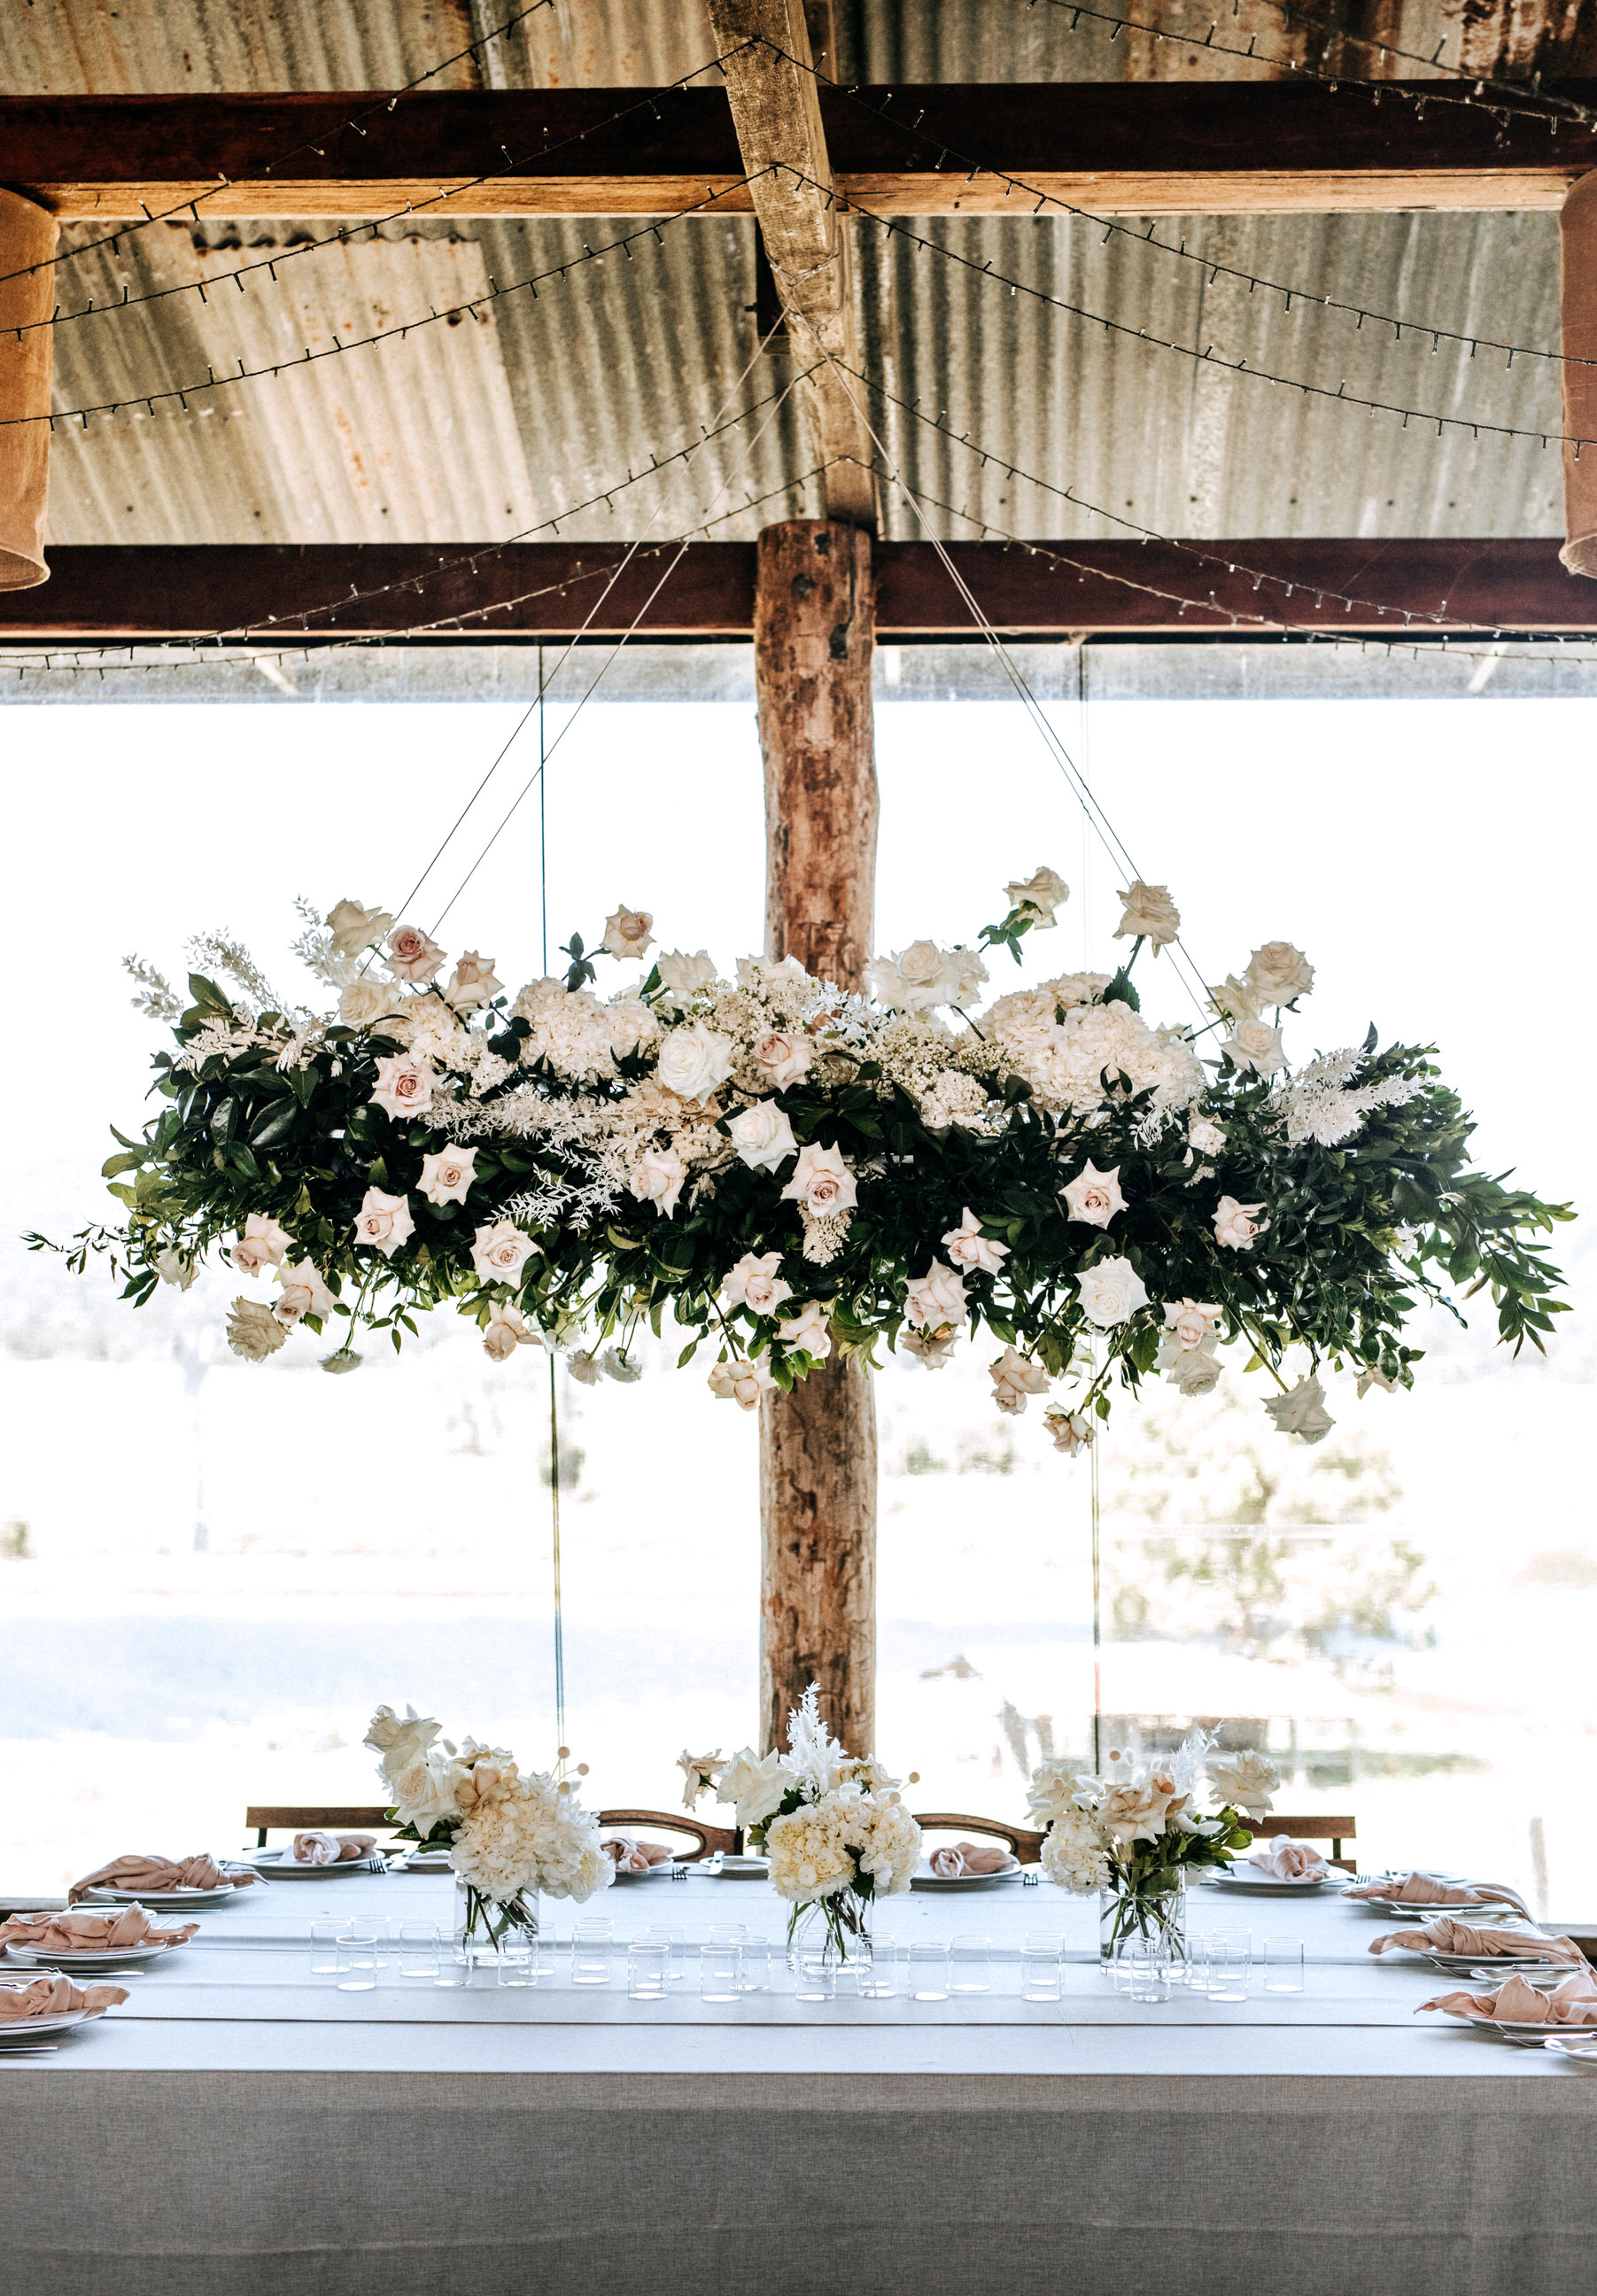 Hanging installation with lush greenery and pastel blooms